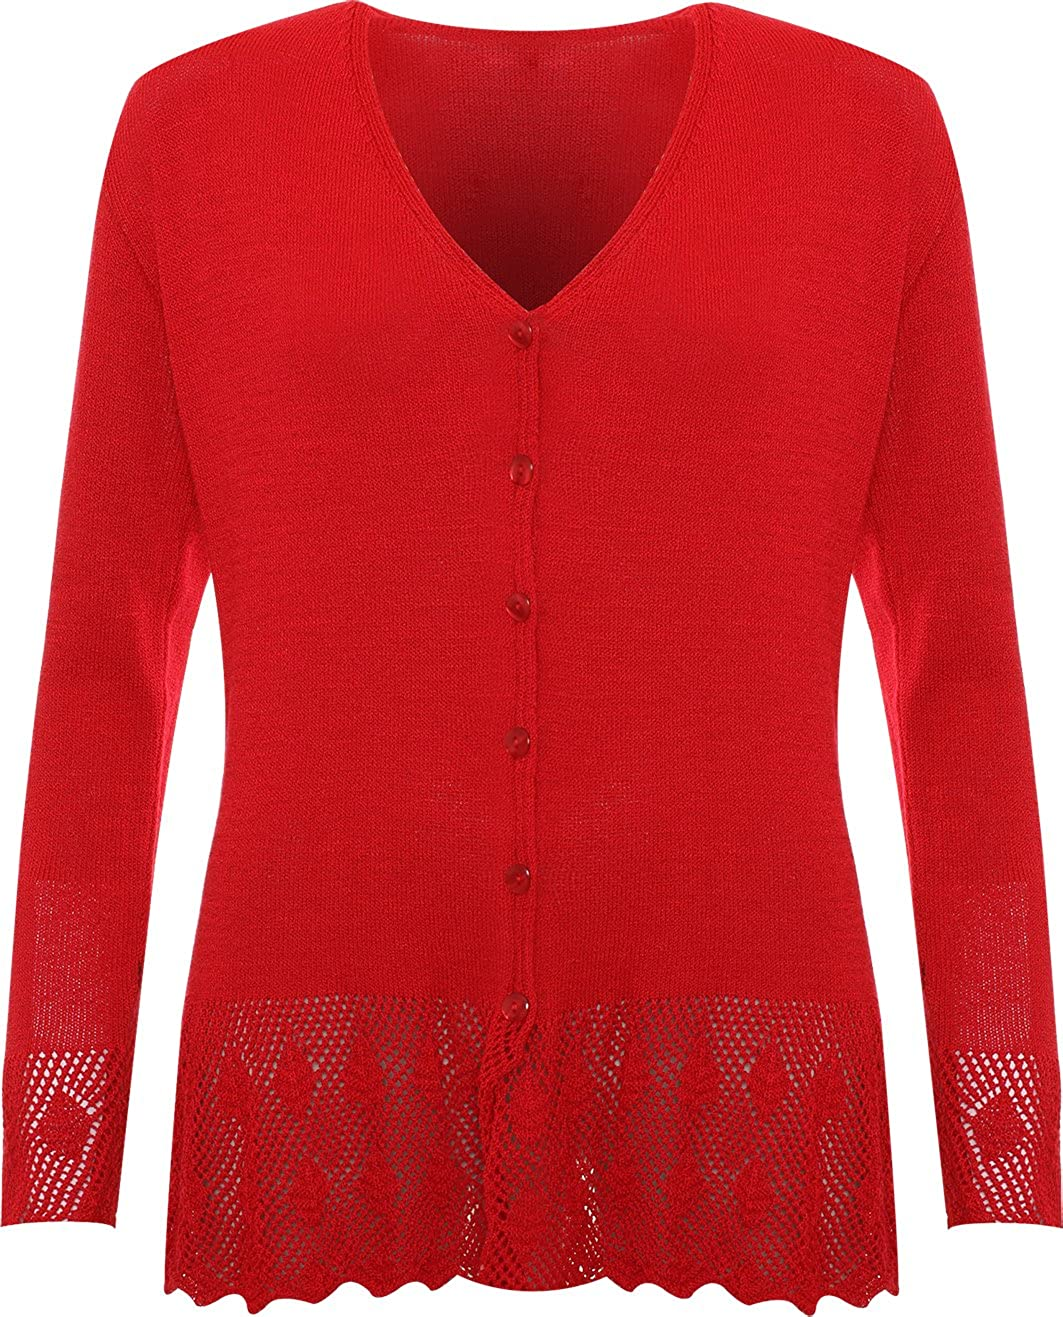 WearAll Plus Size Womens Knitted Button Cardigan Ladies Long Sleeve Crochet Top - Sizes 14-24 37500